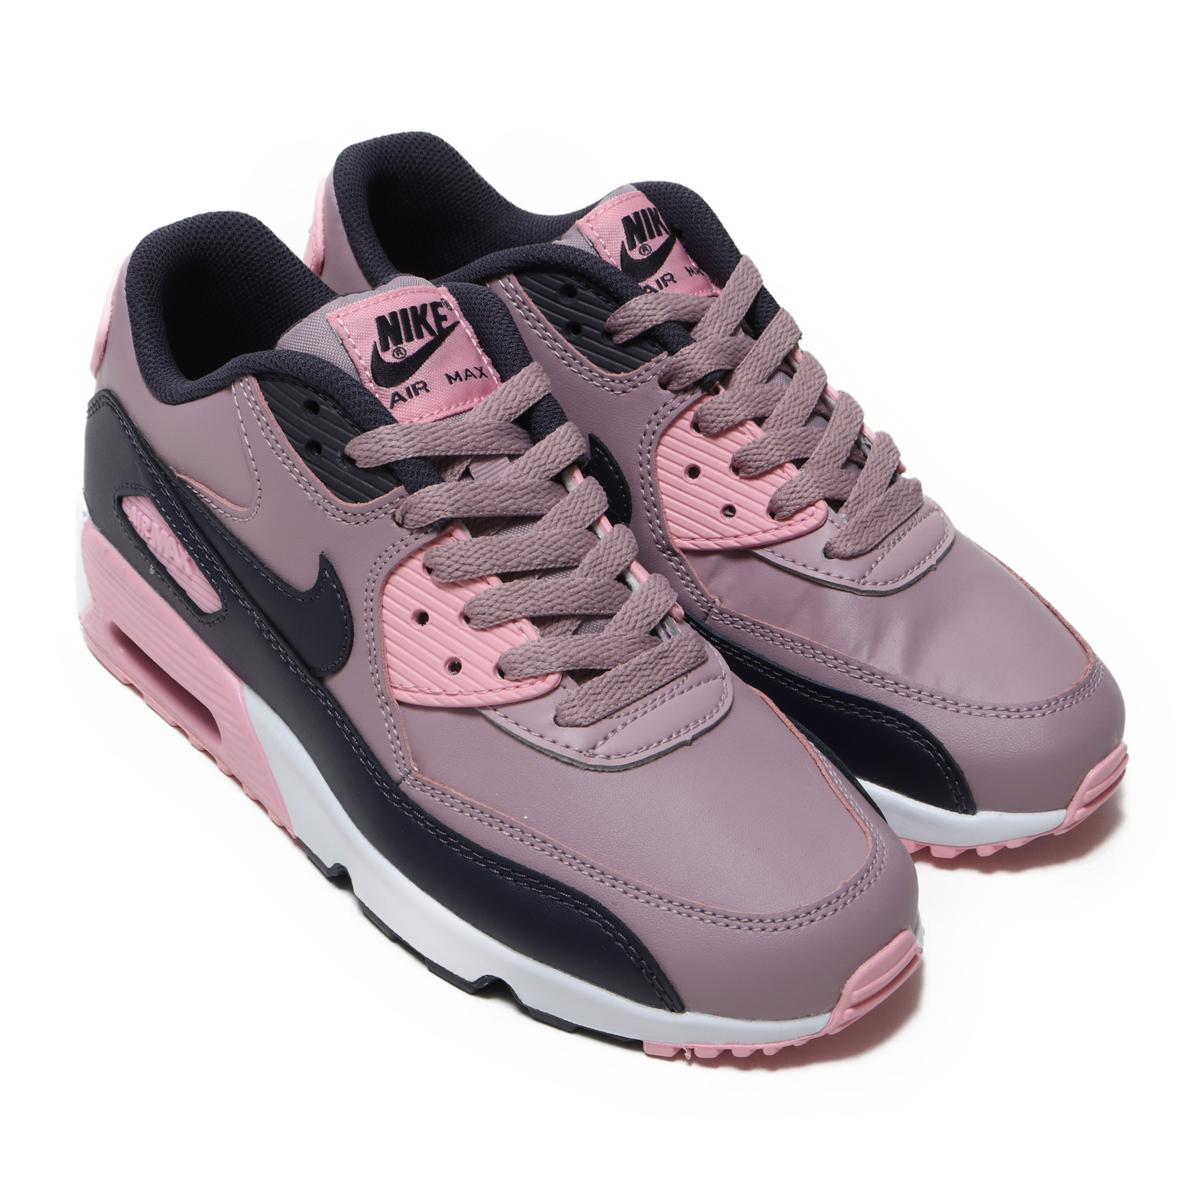 NIKE AIR MAX 90 LTR (GS)(ナイキ エア マックス 90 LTR GS)ELEMENTAL ROSE/GRIDIRON-PINK-WHITE【キッズ スニーカー】18FA-I